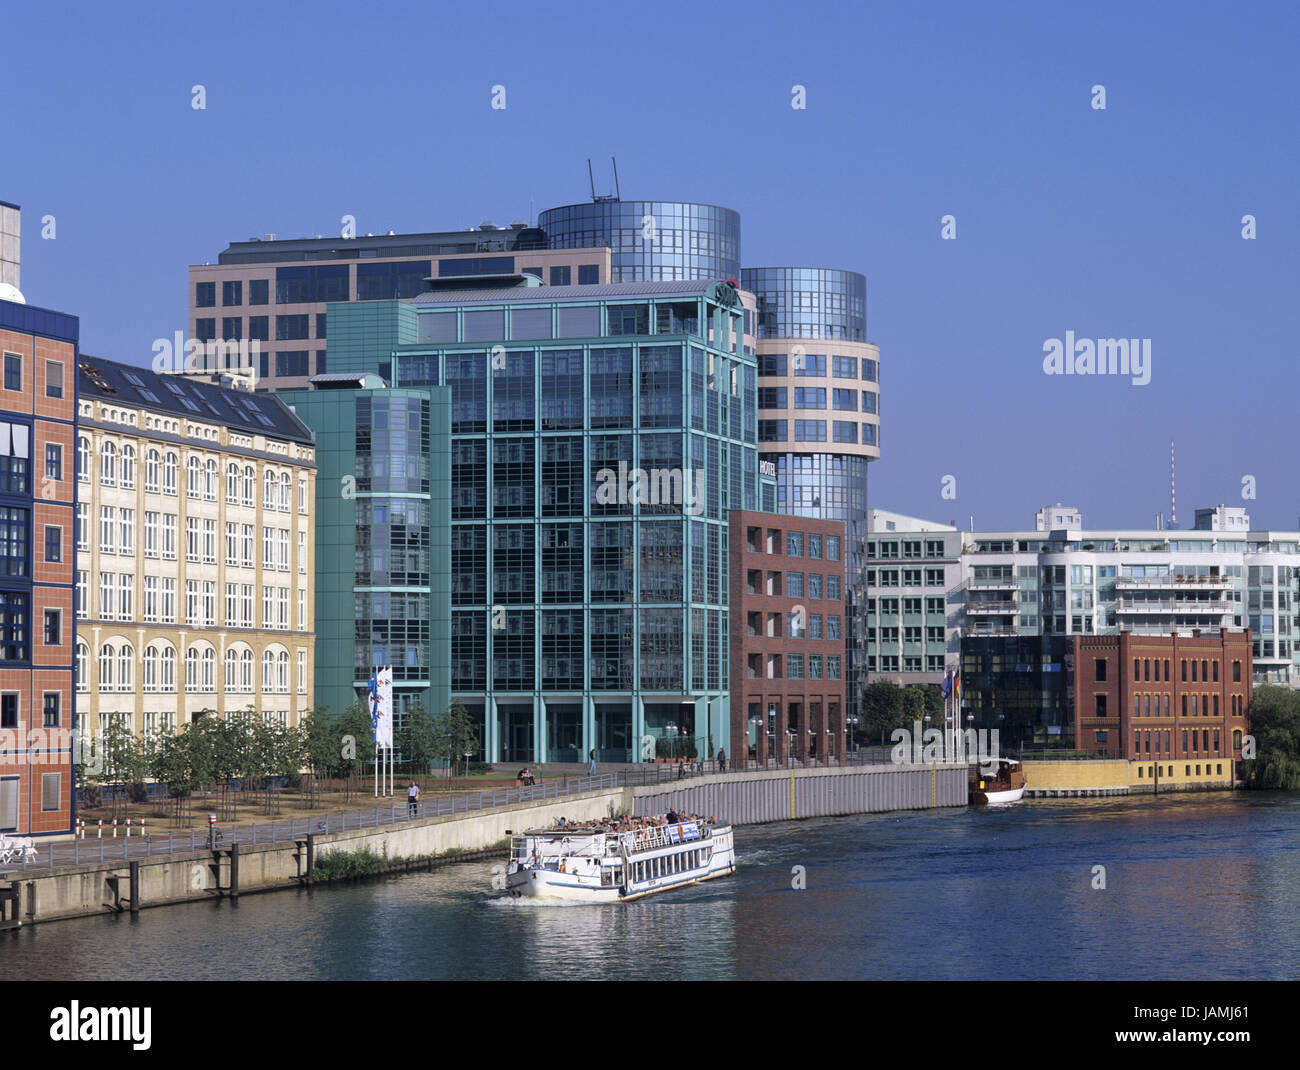 Germany,Berlin middle,Federal Ministry of the core,Focus tele-port,the Spree, - Stock Image